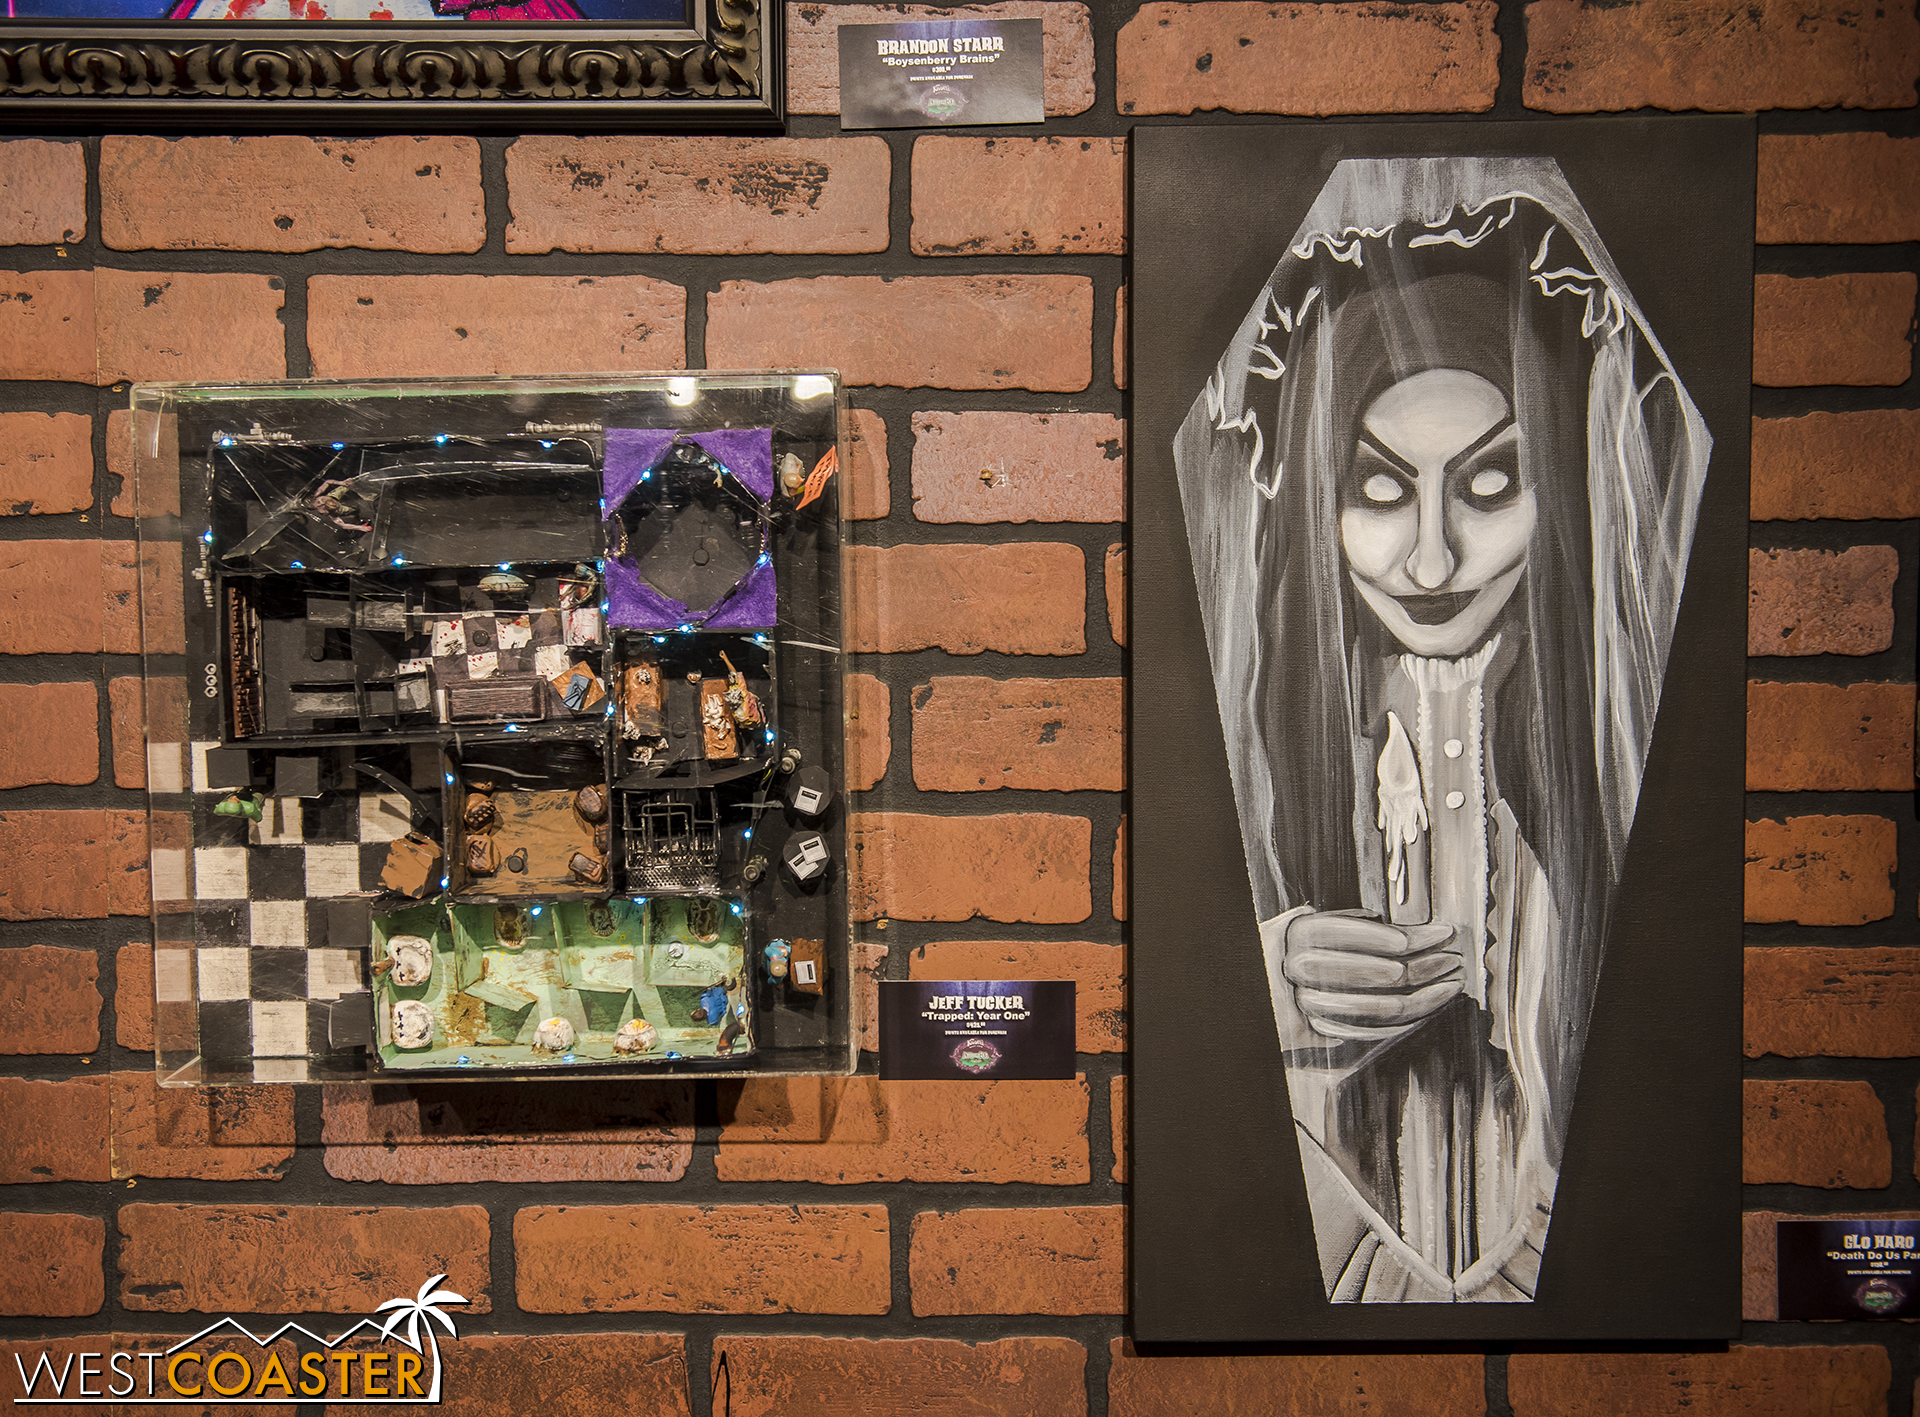 Oh look, Jeff Tucker has a piece too! It's a model of Trapped.  And on the right, a self portrait by The Bride.